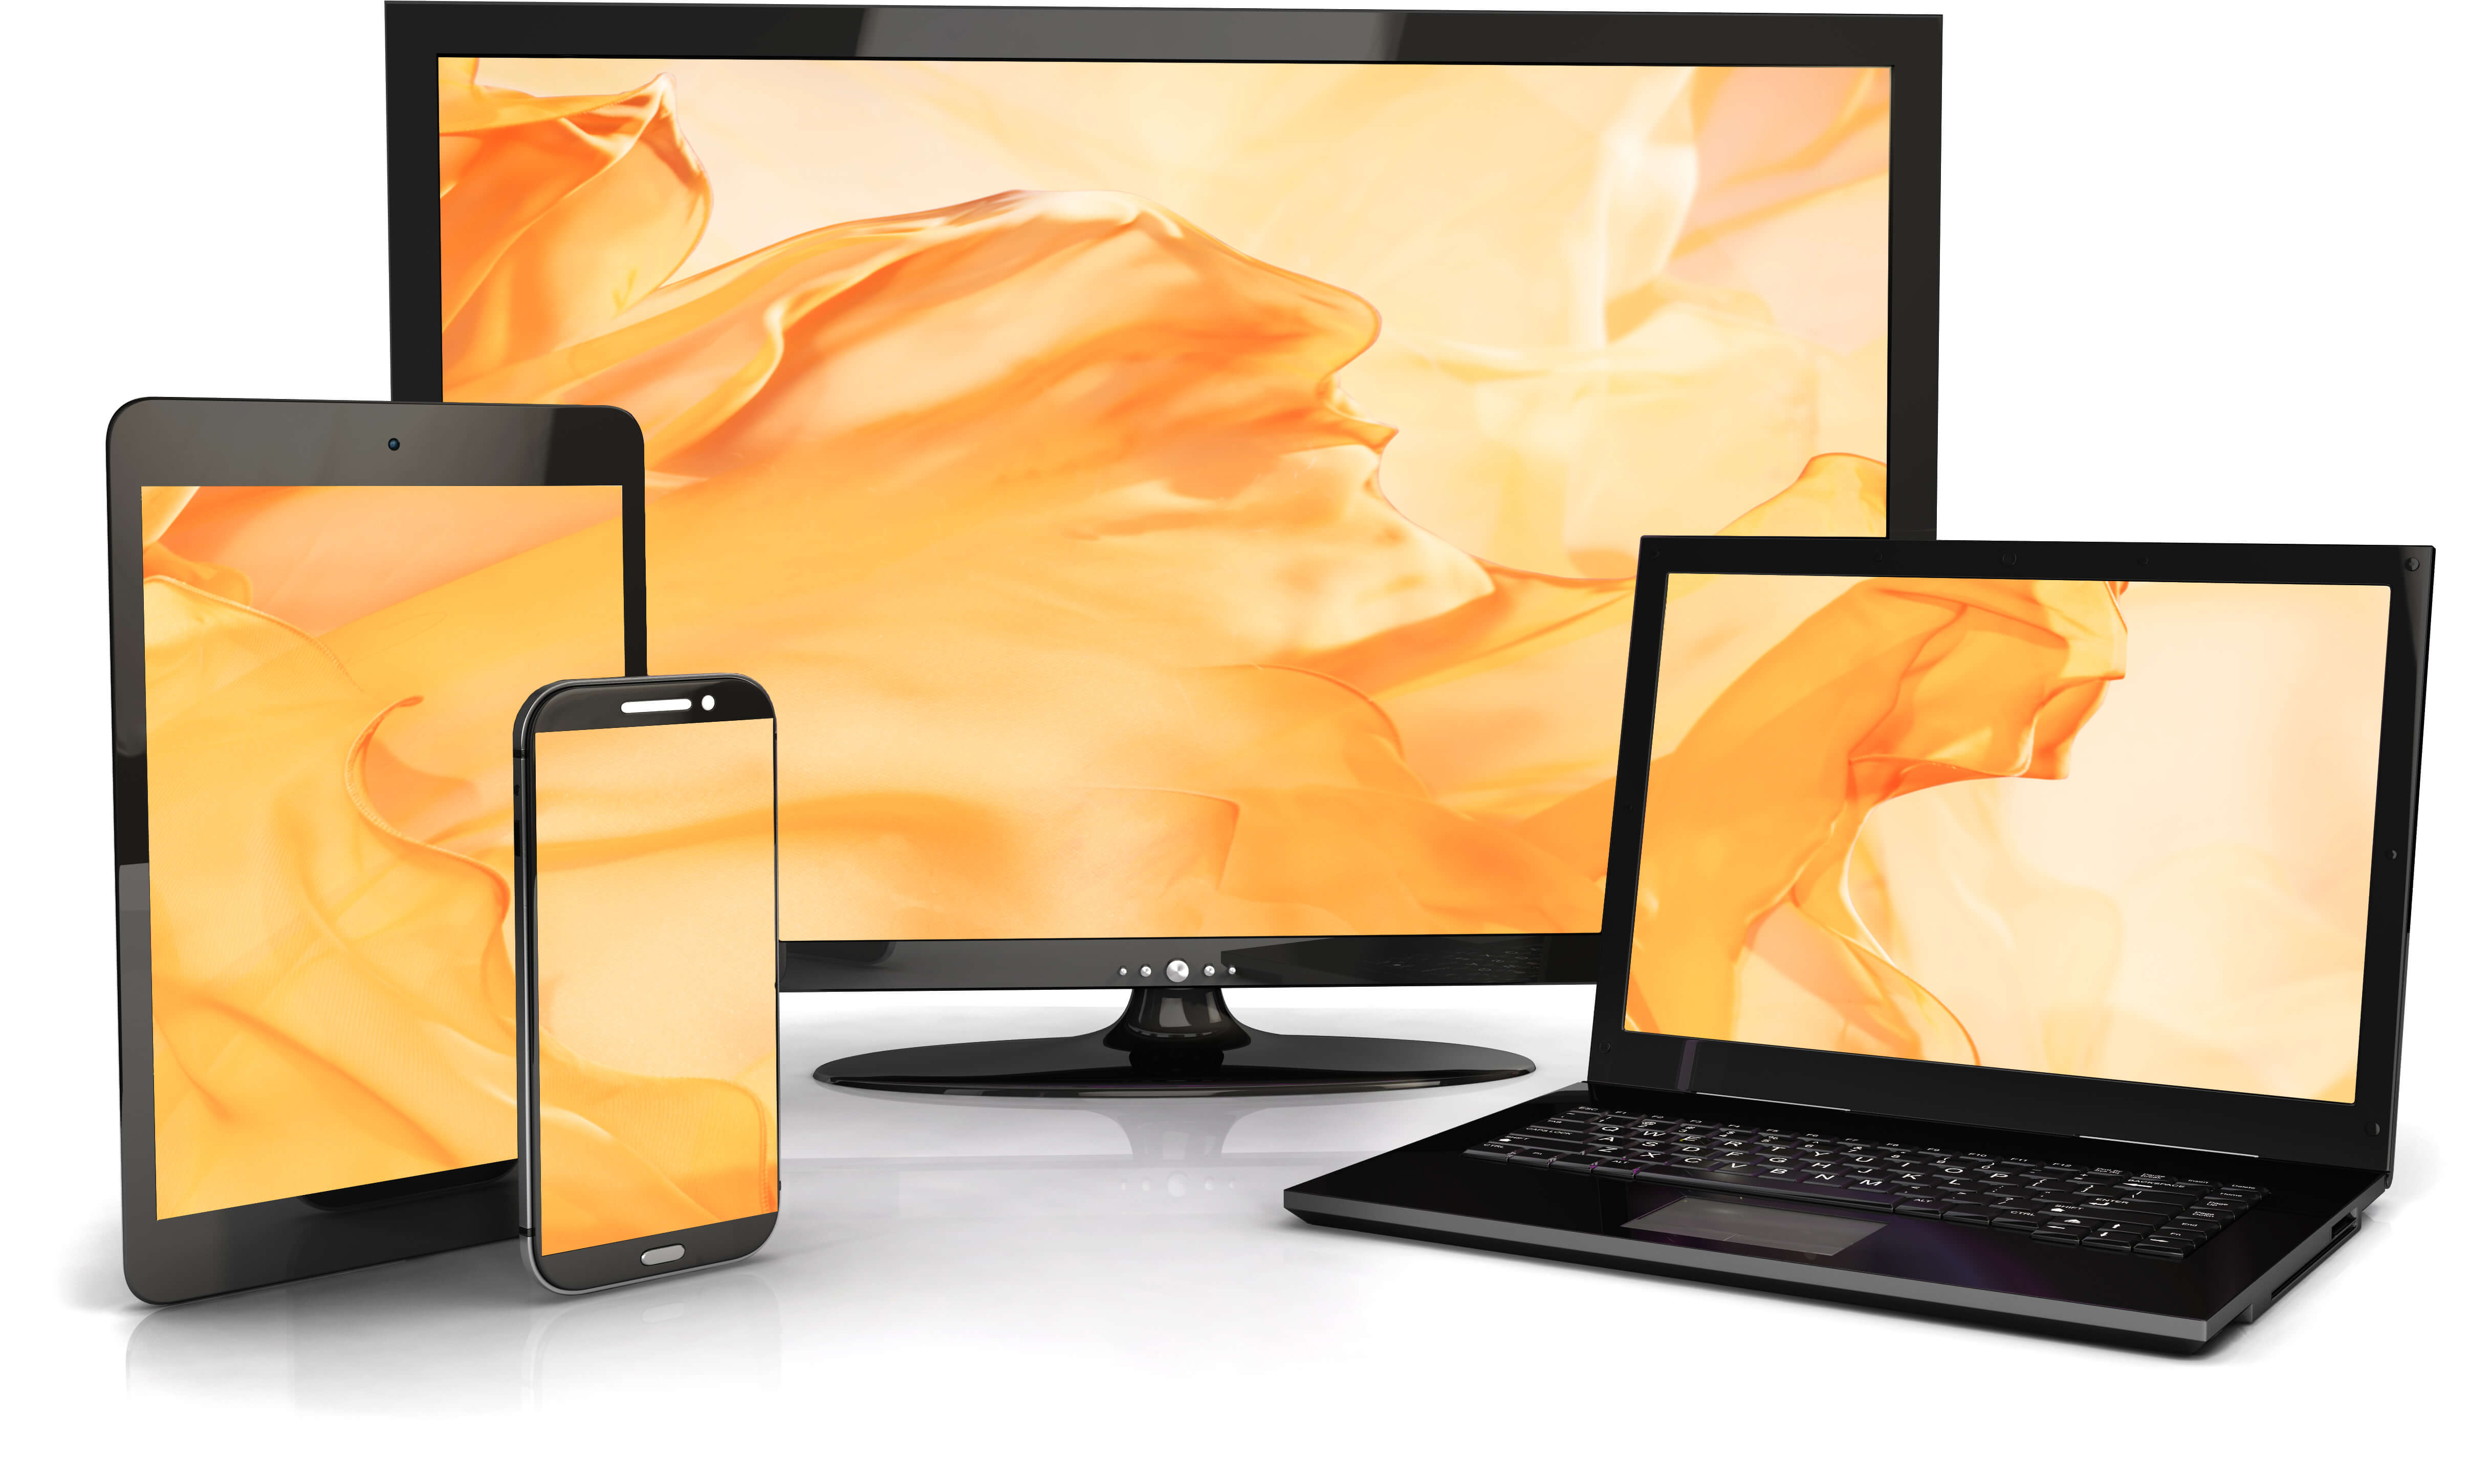 multiple devices with the same screensaver